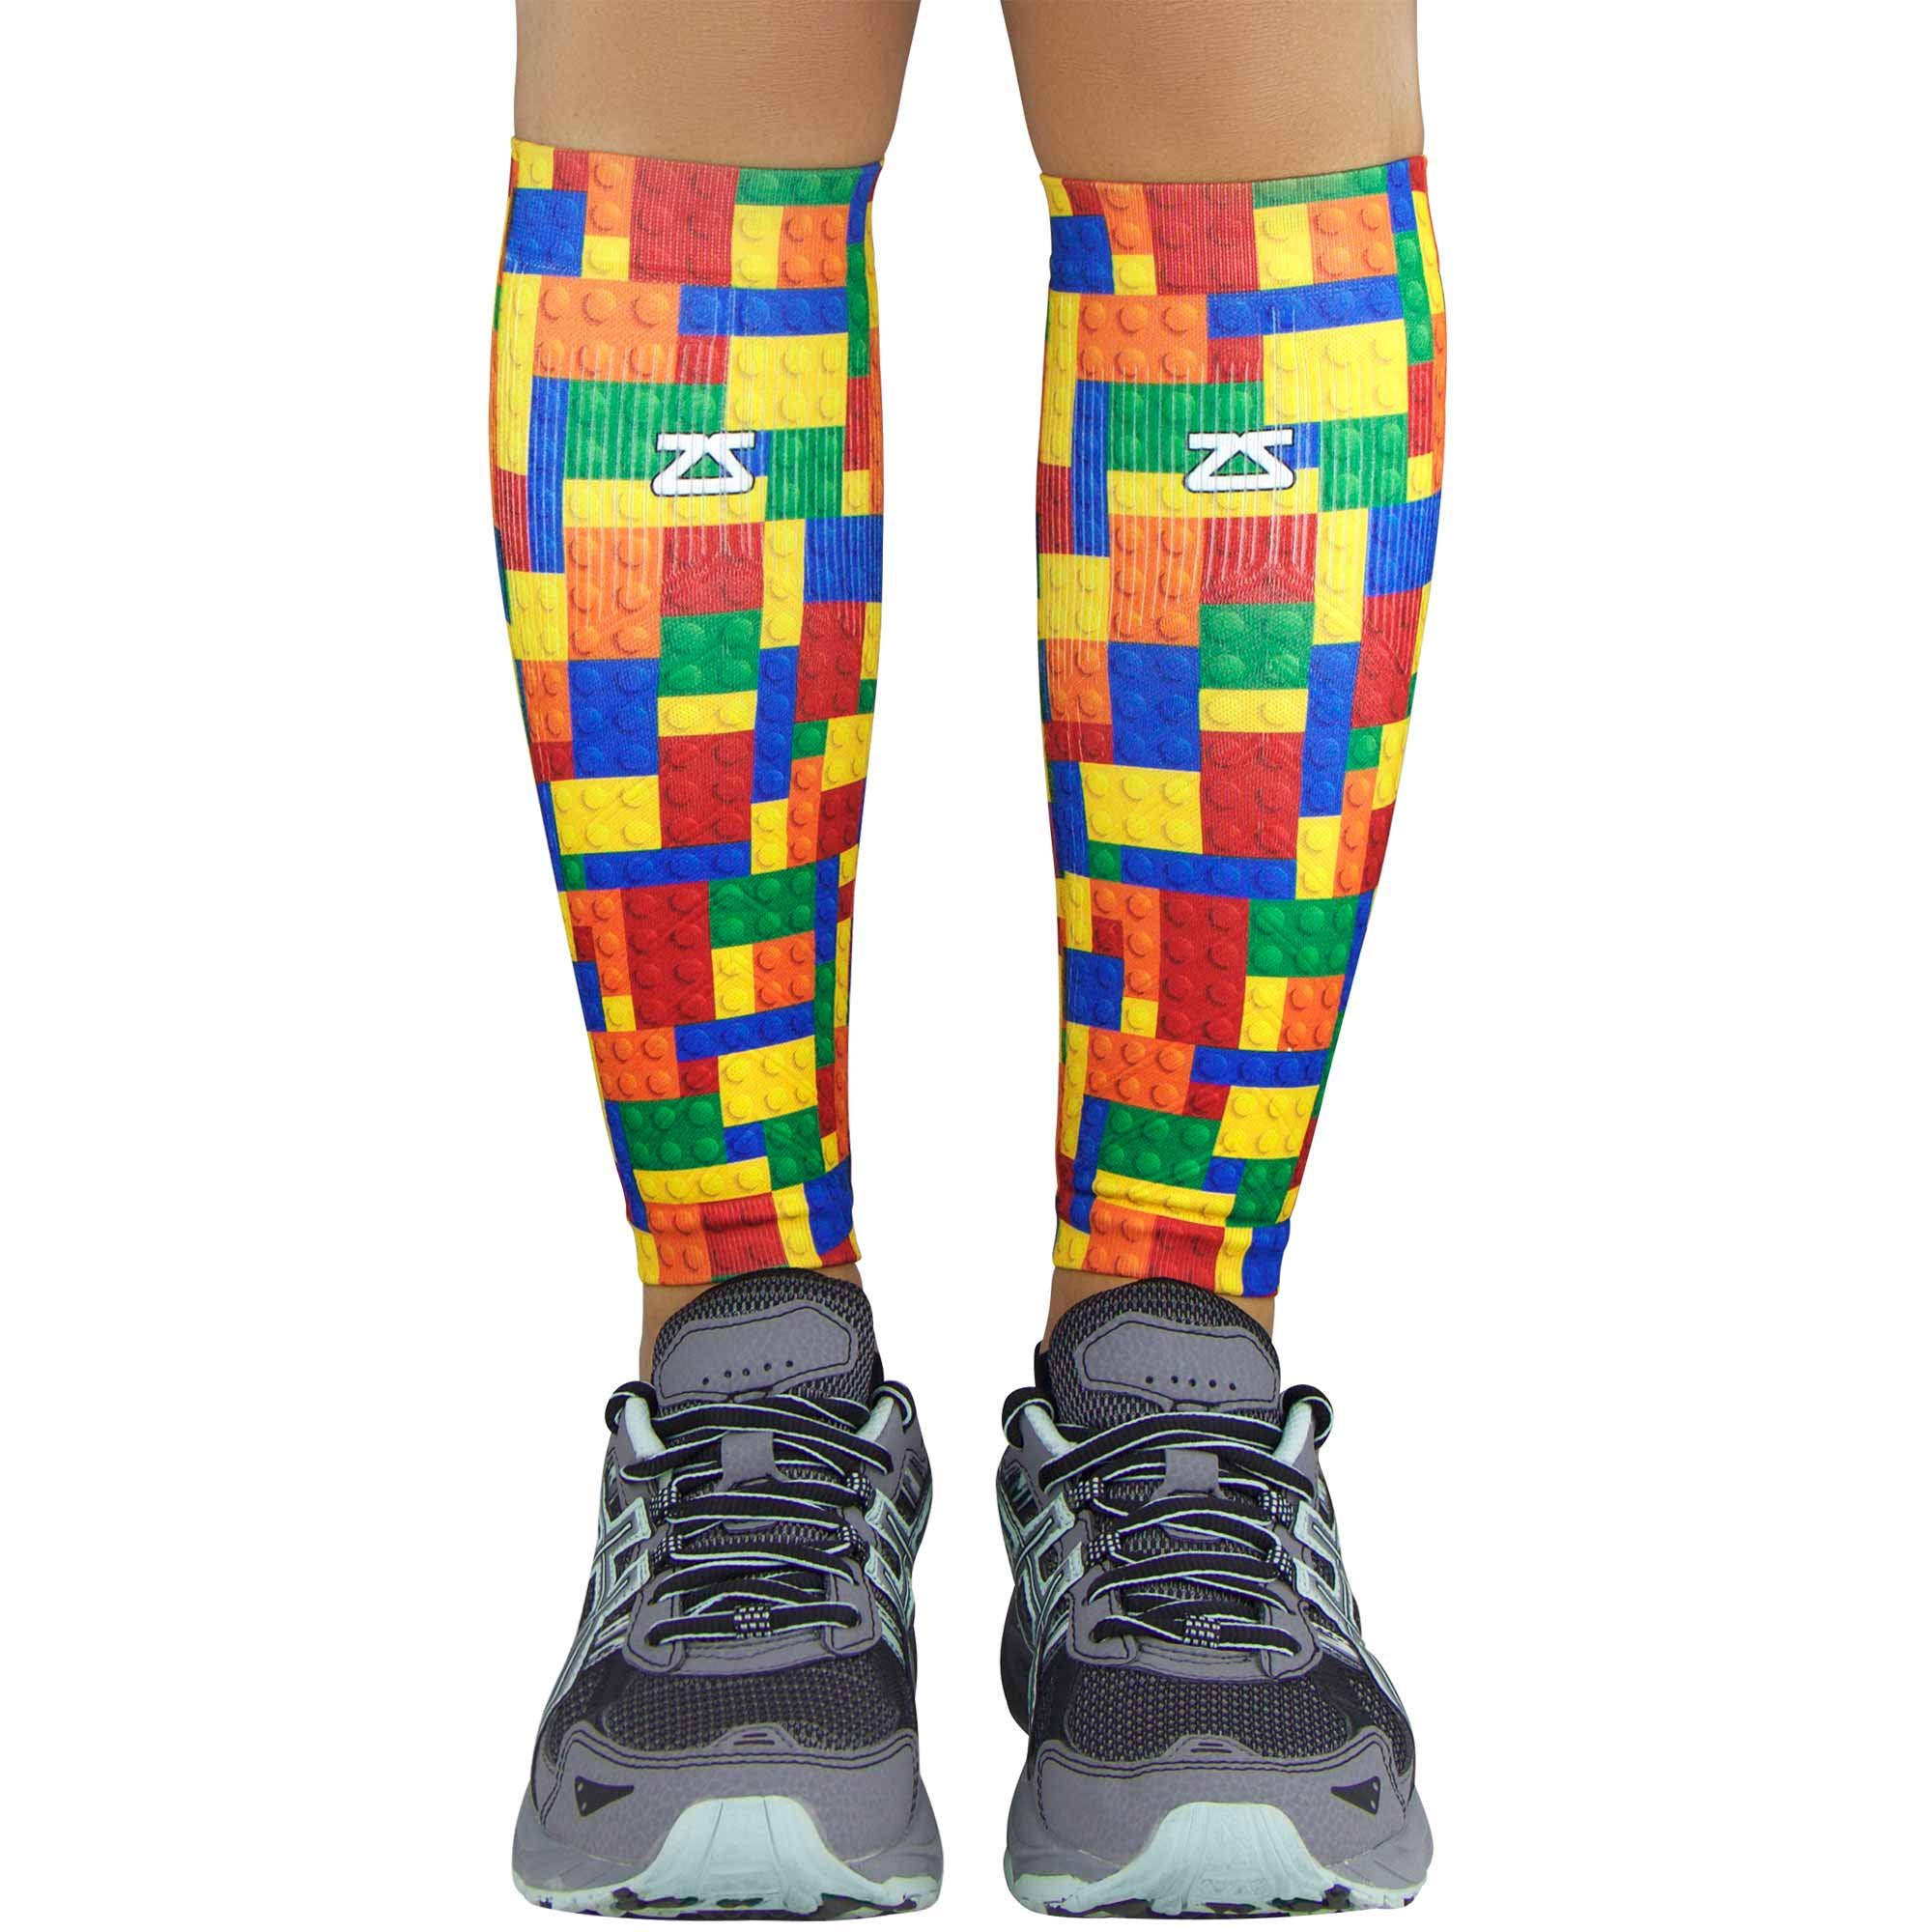 Zensah Compression Leg Sleeves - Helps Shin Splints, Leg Sleeves for Running (X-Small/Small, Puzzle Blocks-Blue/Yellow/Red)